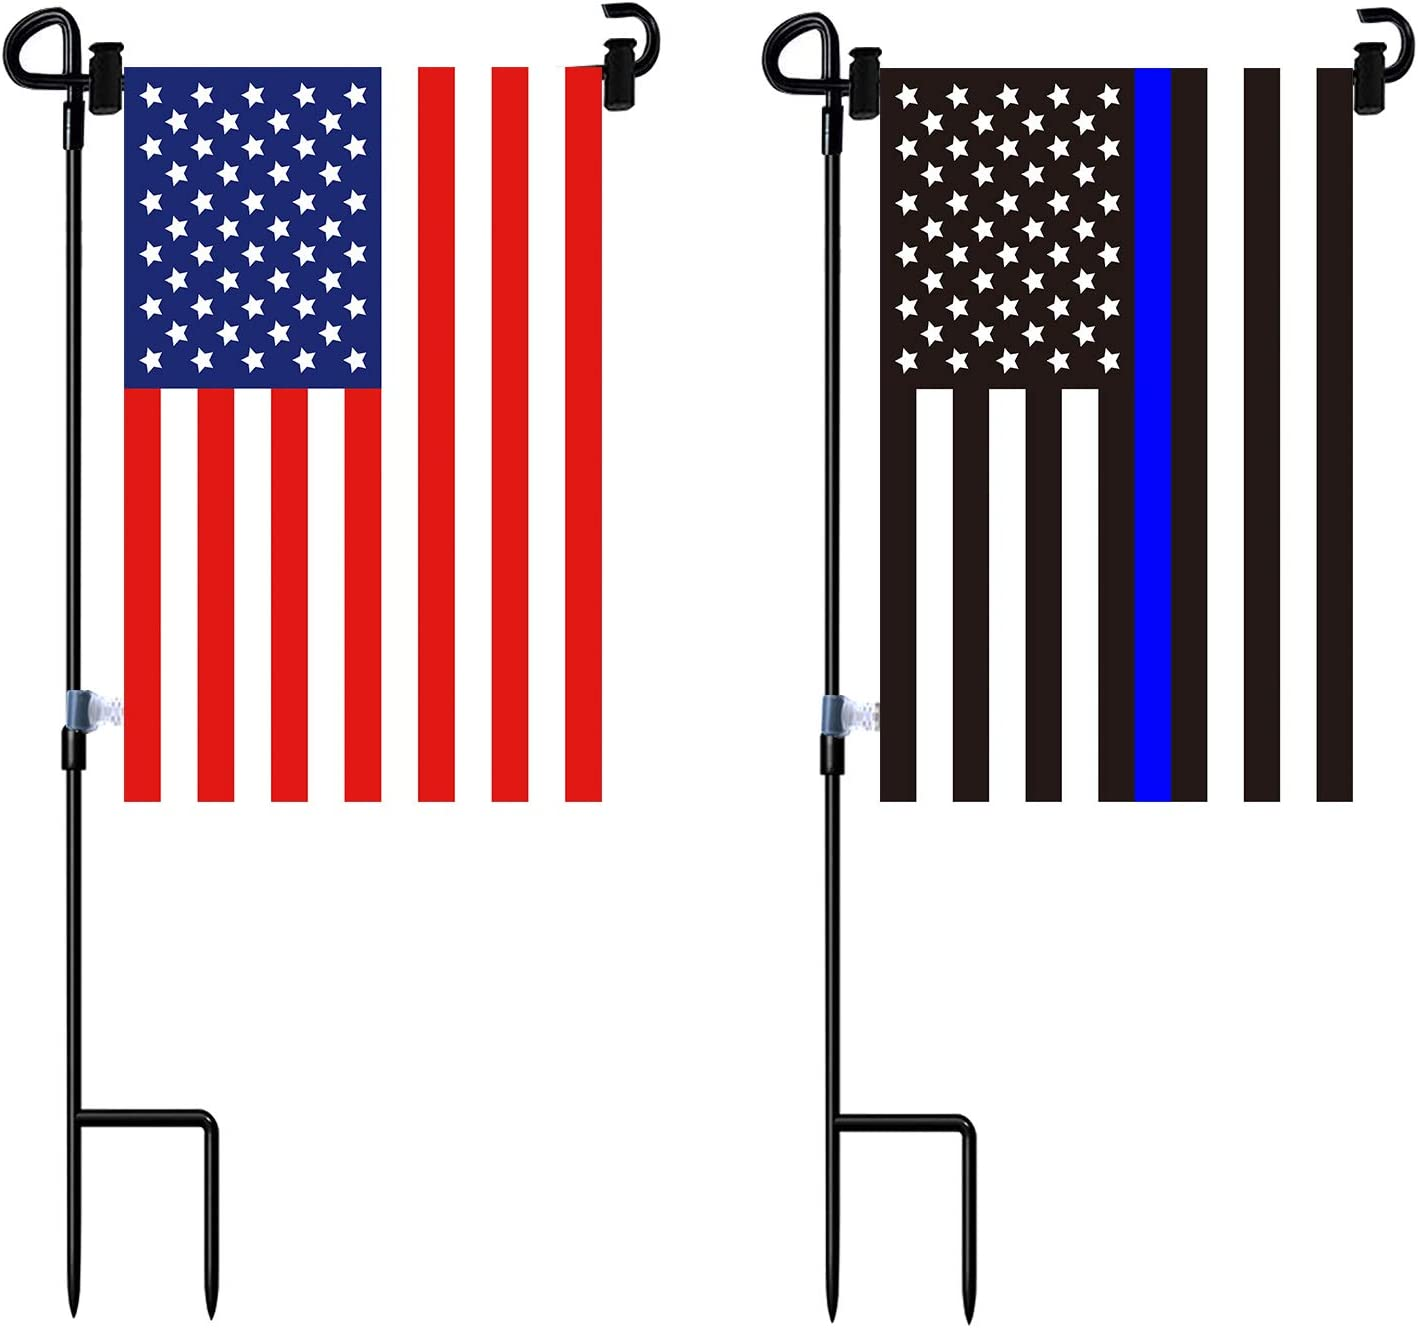 Garden Flag Stand and American Flag, Thin Blue Line Garden Flag with AntiWind Clip,Stopper,Weatherproof 2 Sided 12x18 Inch Patriotic US Flag Banner Keep Your Flags from Flying Away in High Winds